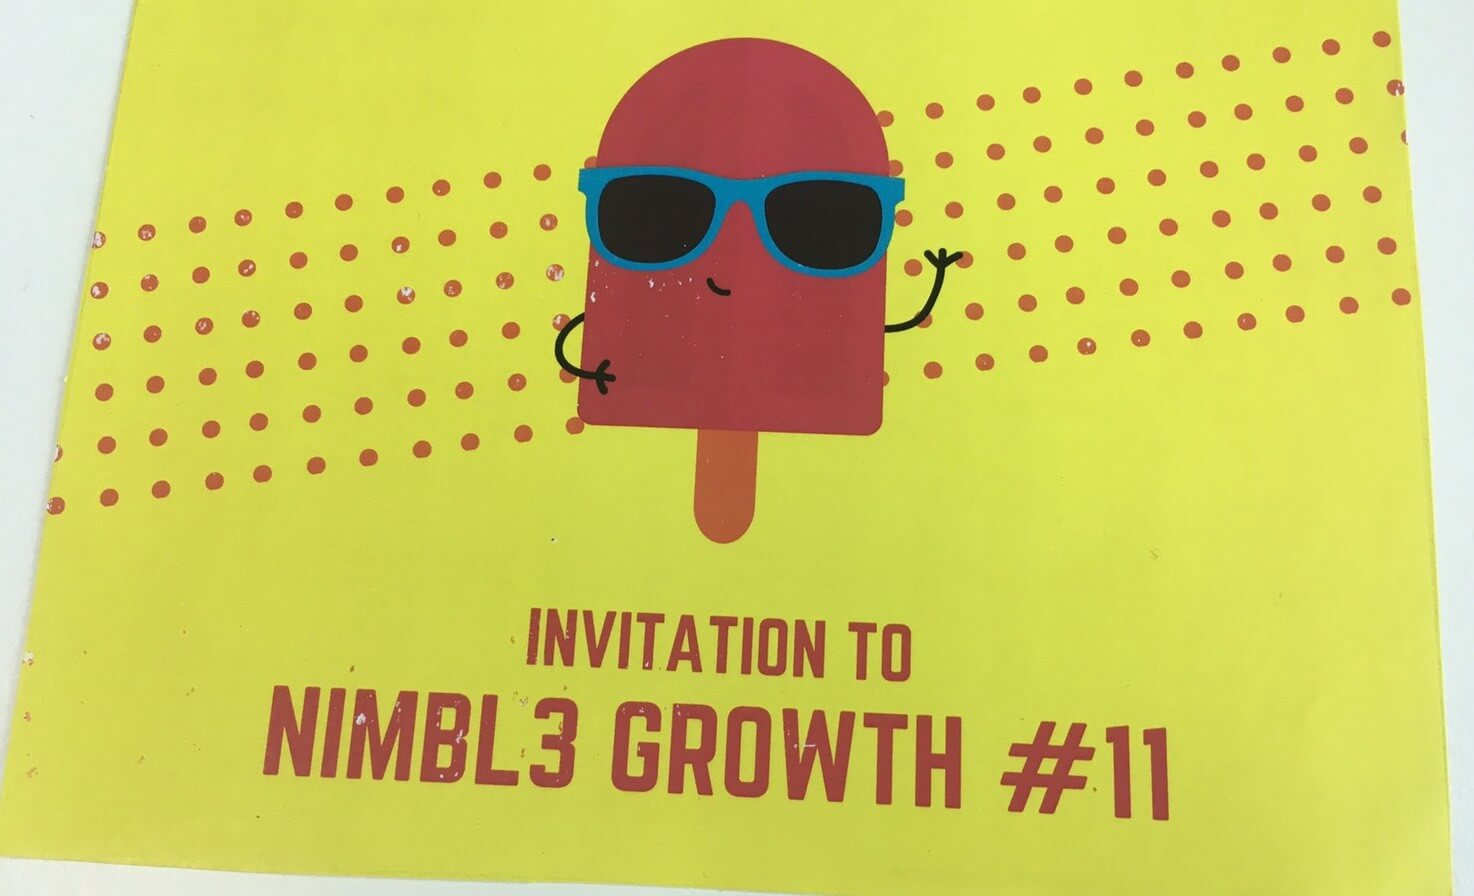 Even if NIMBLE GROWTH #10 was my last one as an intern, I still got the invitation for the next one too 😆